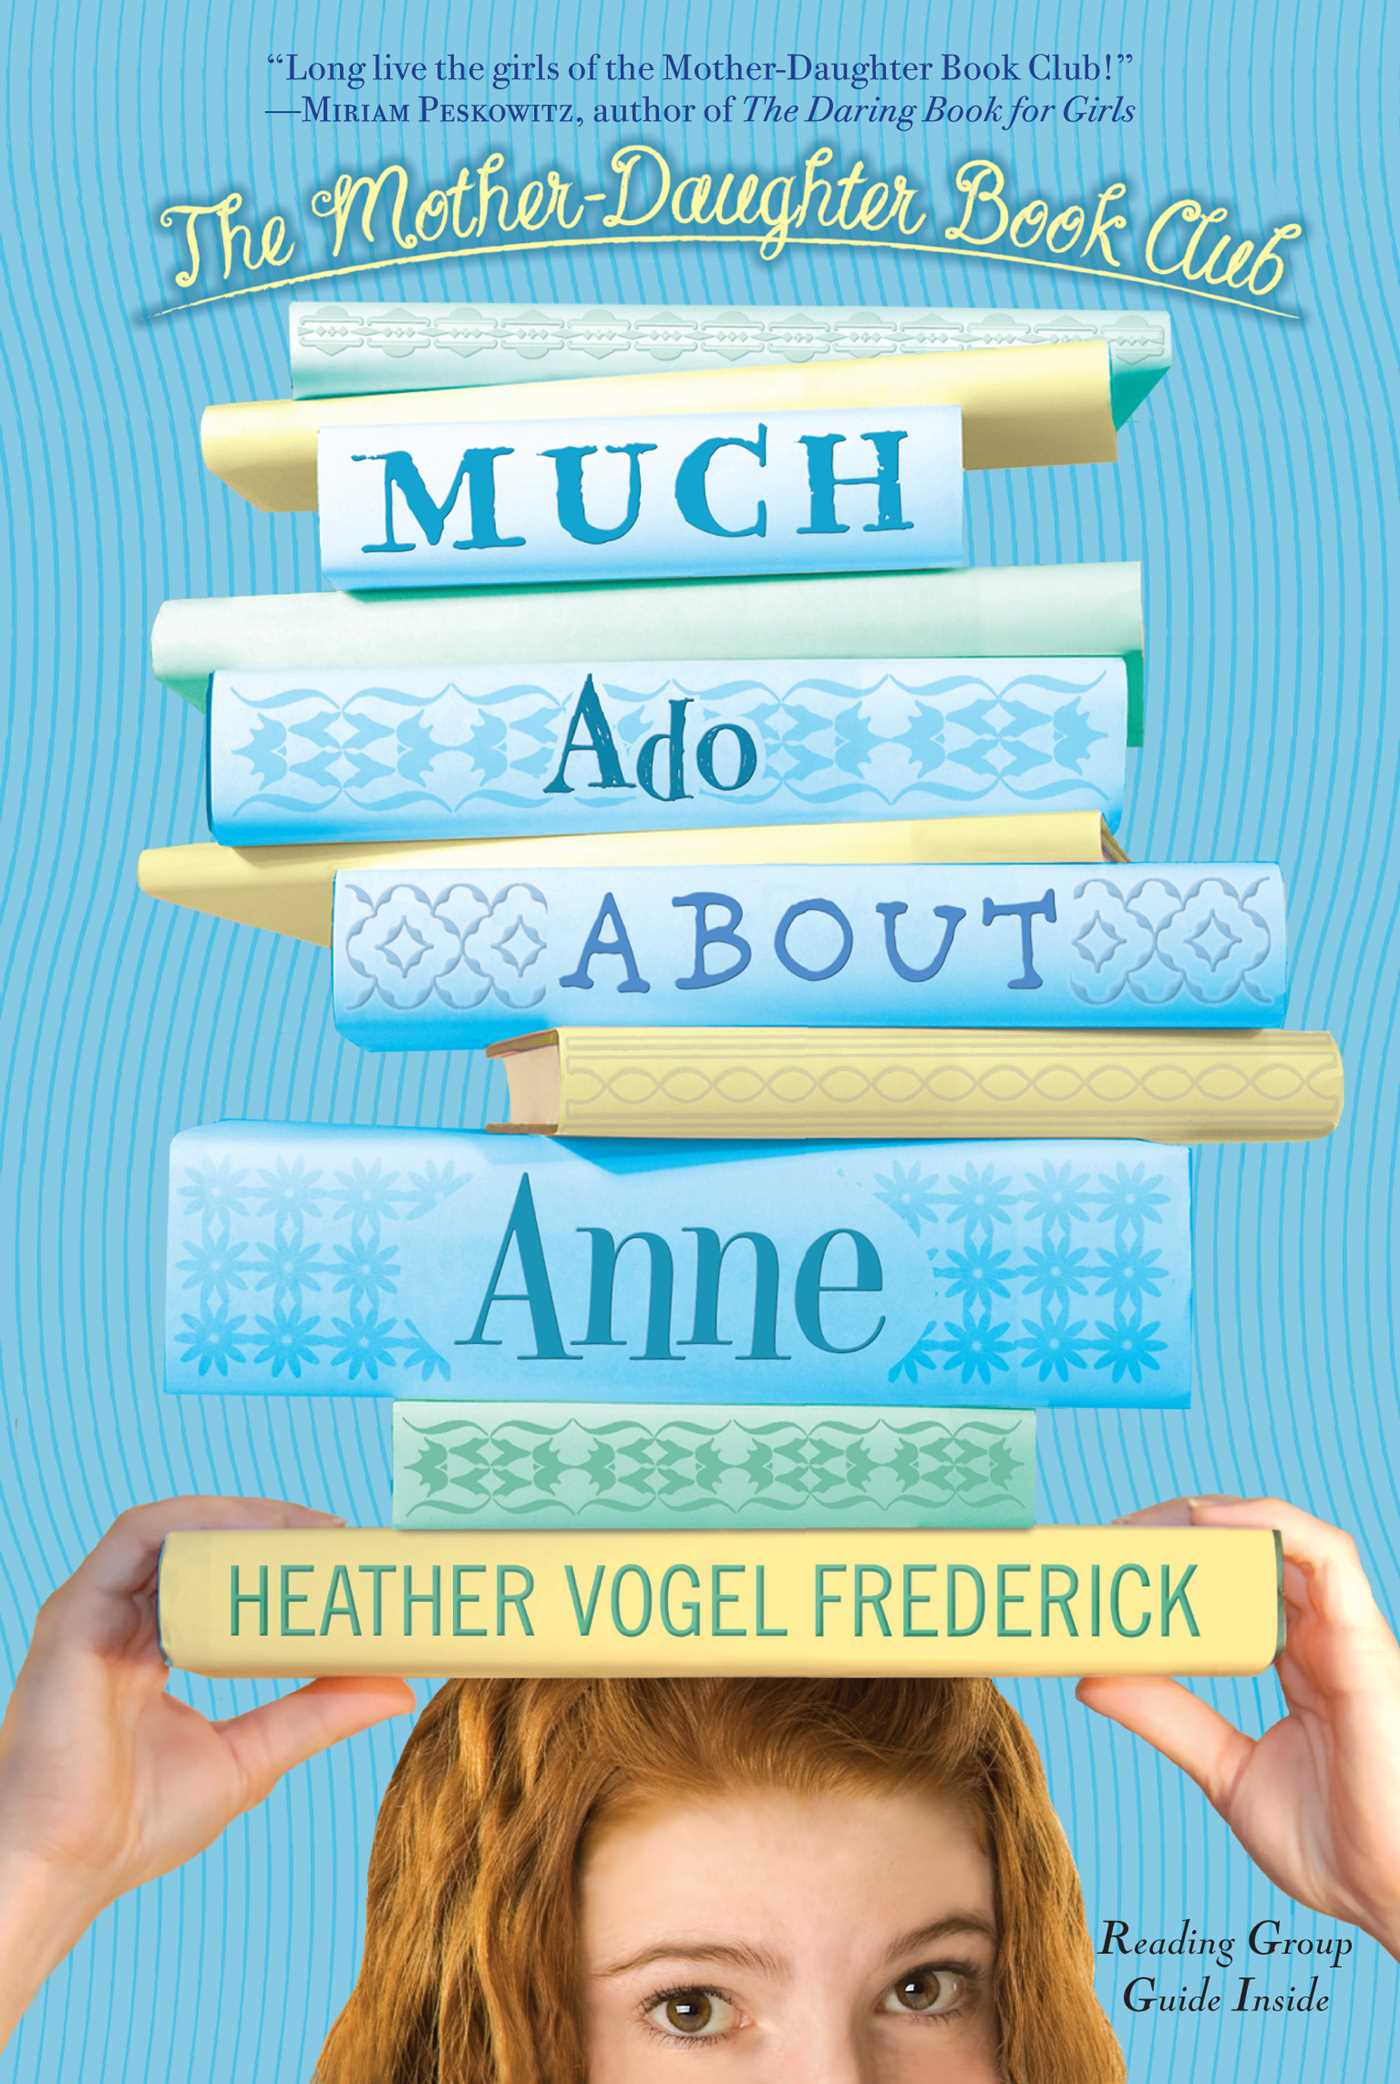 Much-ado-about-anne-9781416996835_hr